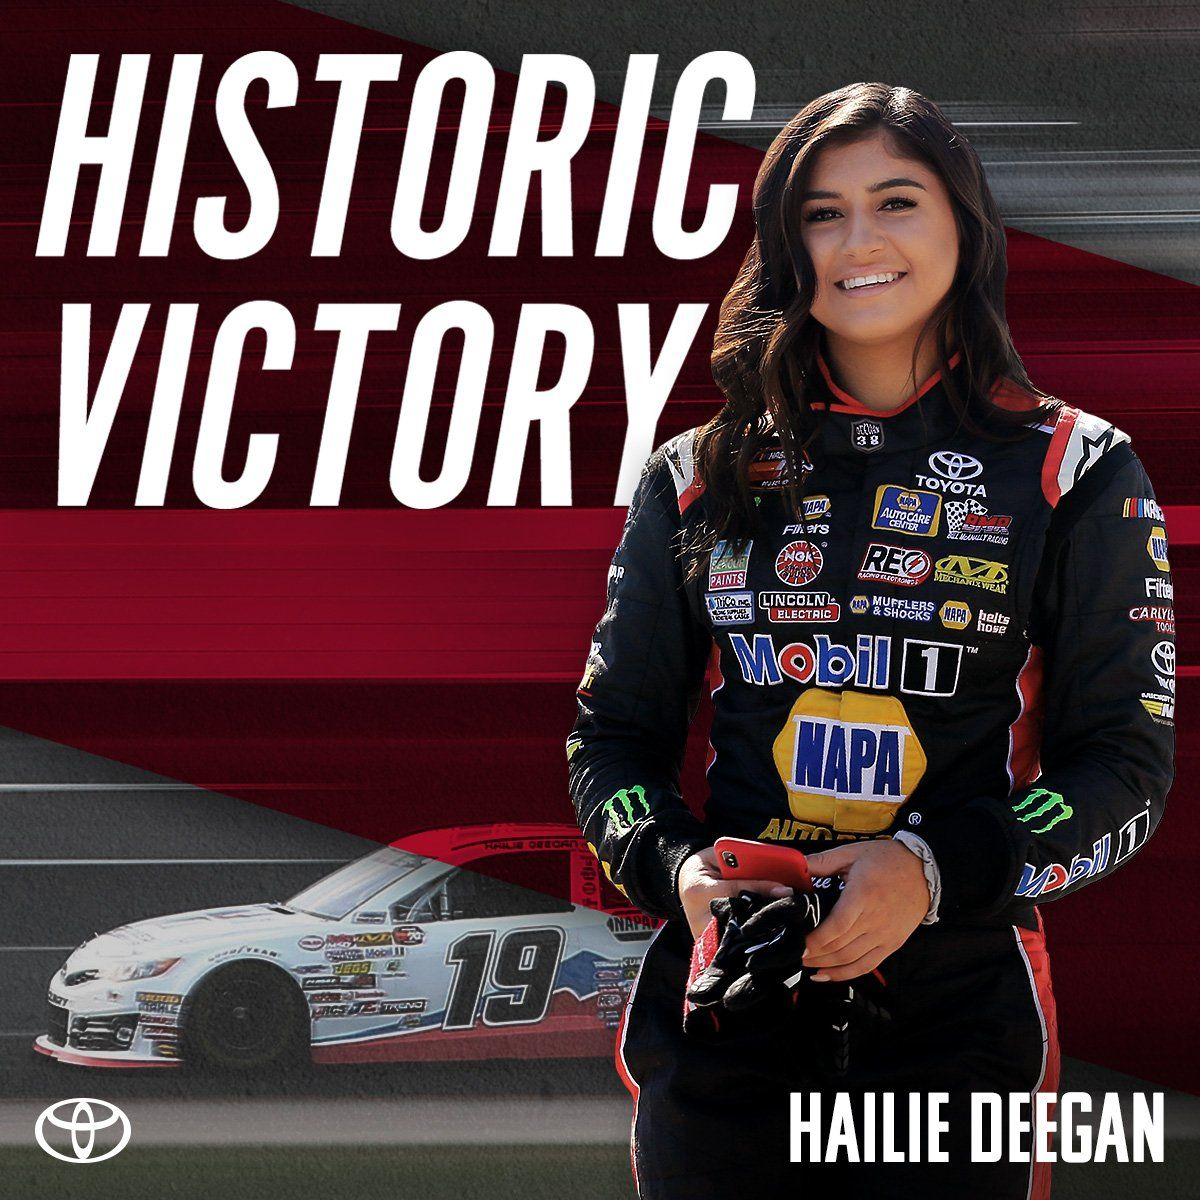 Hailiedeegan Makes History And Becomes The First Female Nascar Winner In Nearly 30 Years Female Racers Female Race Car Driver Nascar Drivers